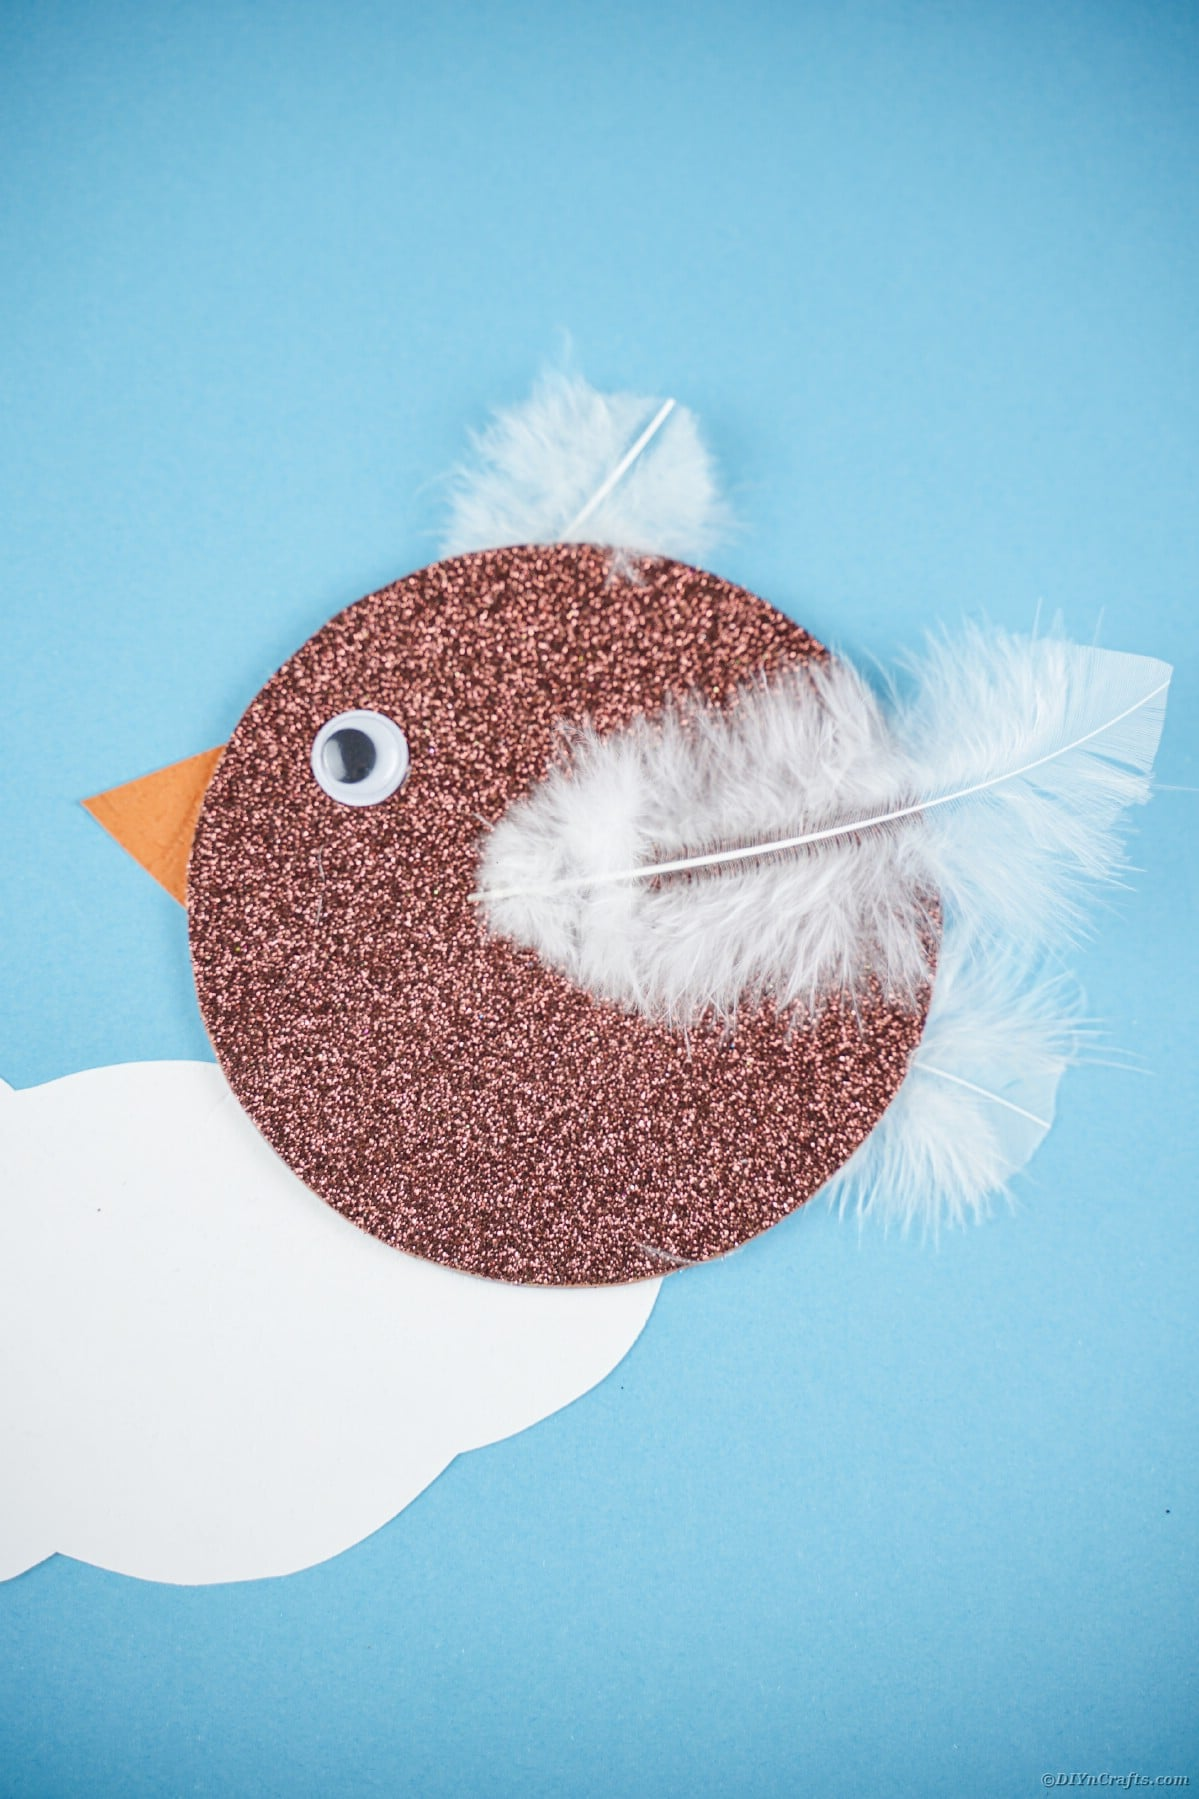 Brown CD bird on blue paper with clouds